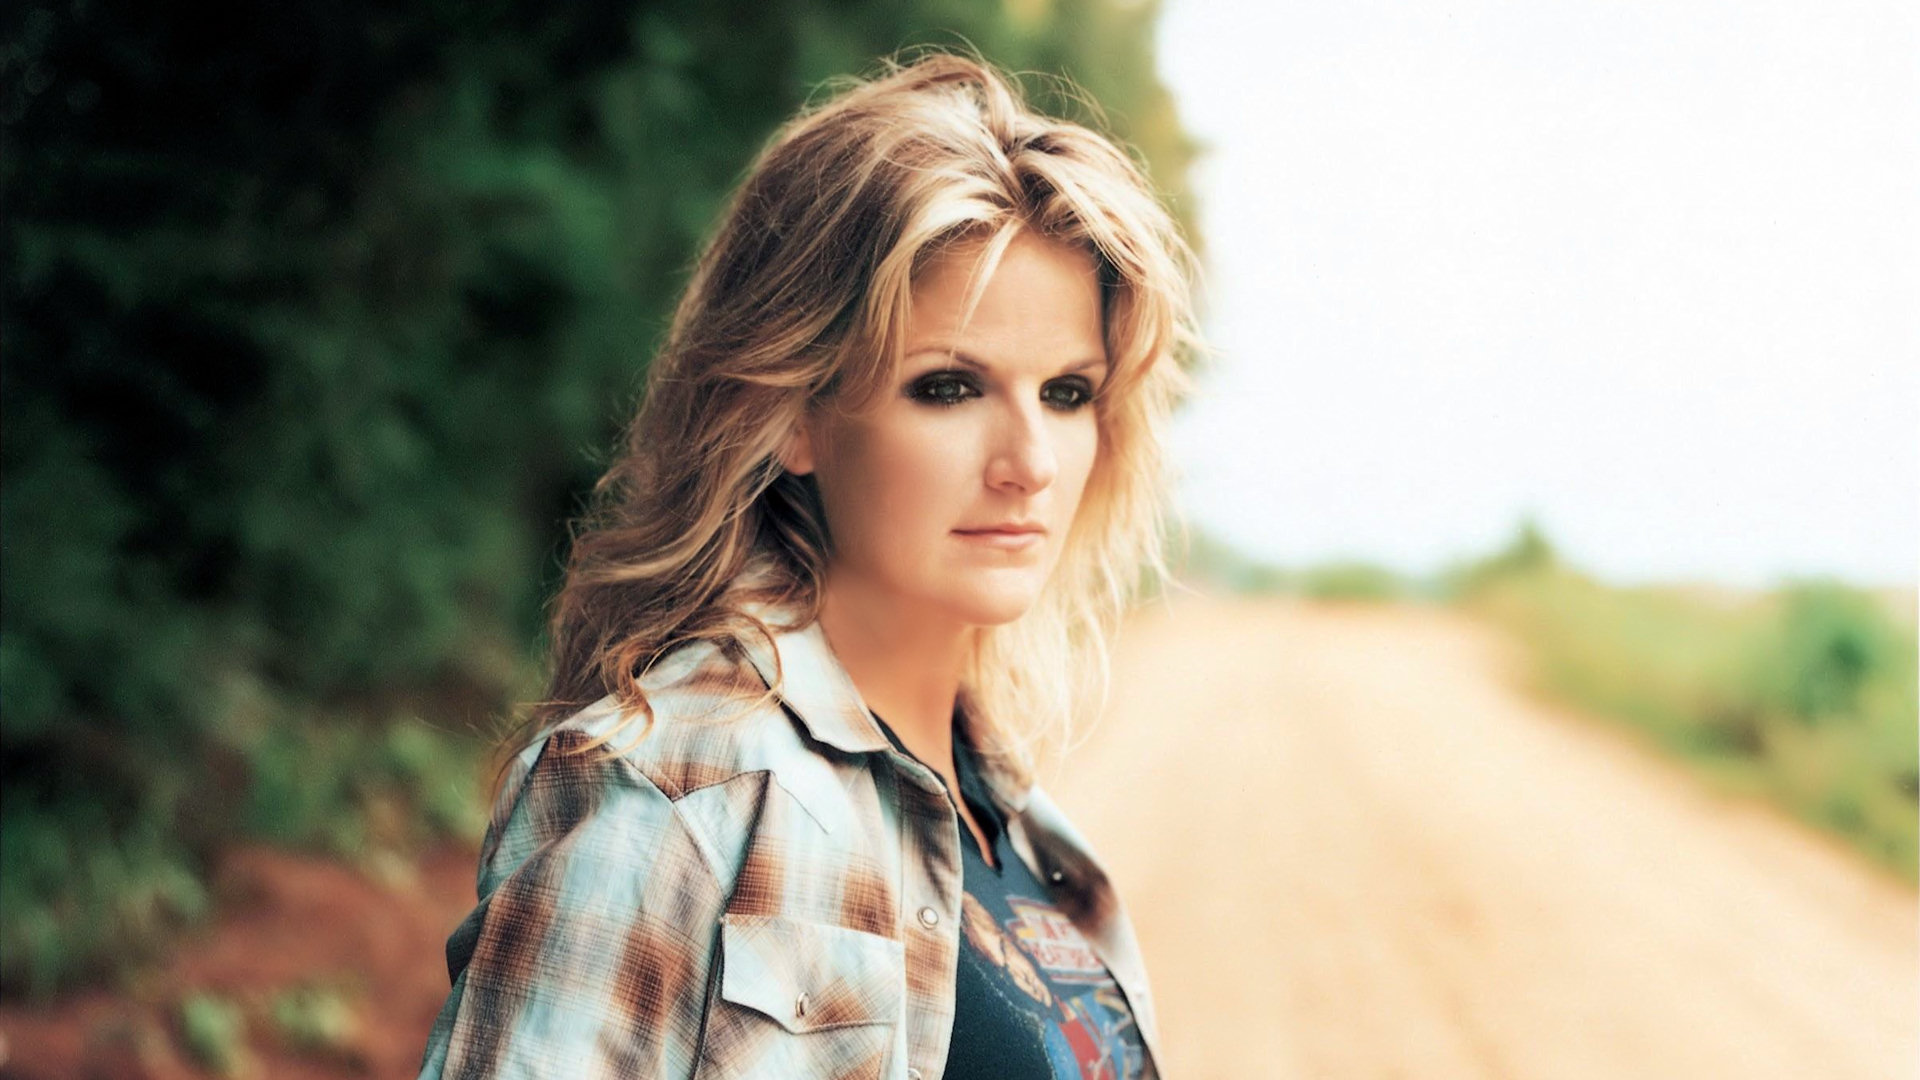 5 trisha yearwood hd wallpapers | background images - wallpaper abyss